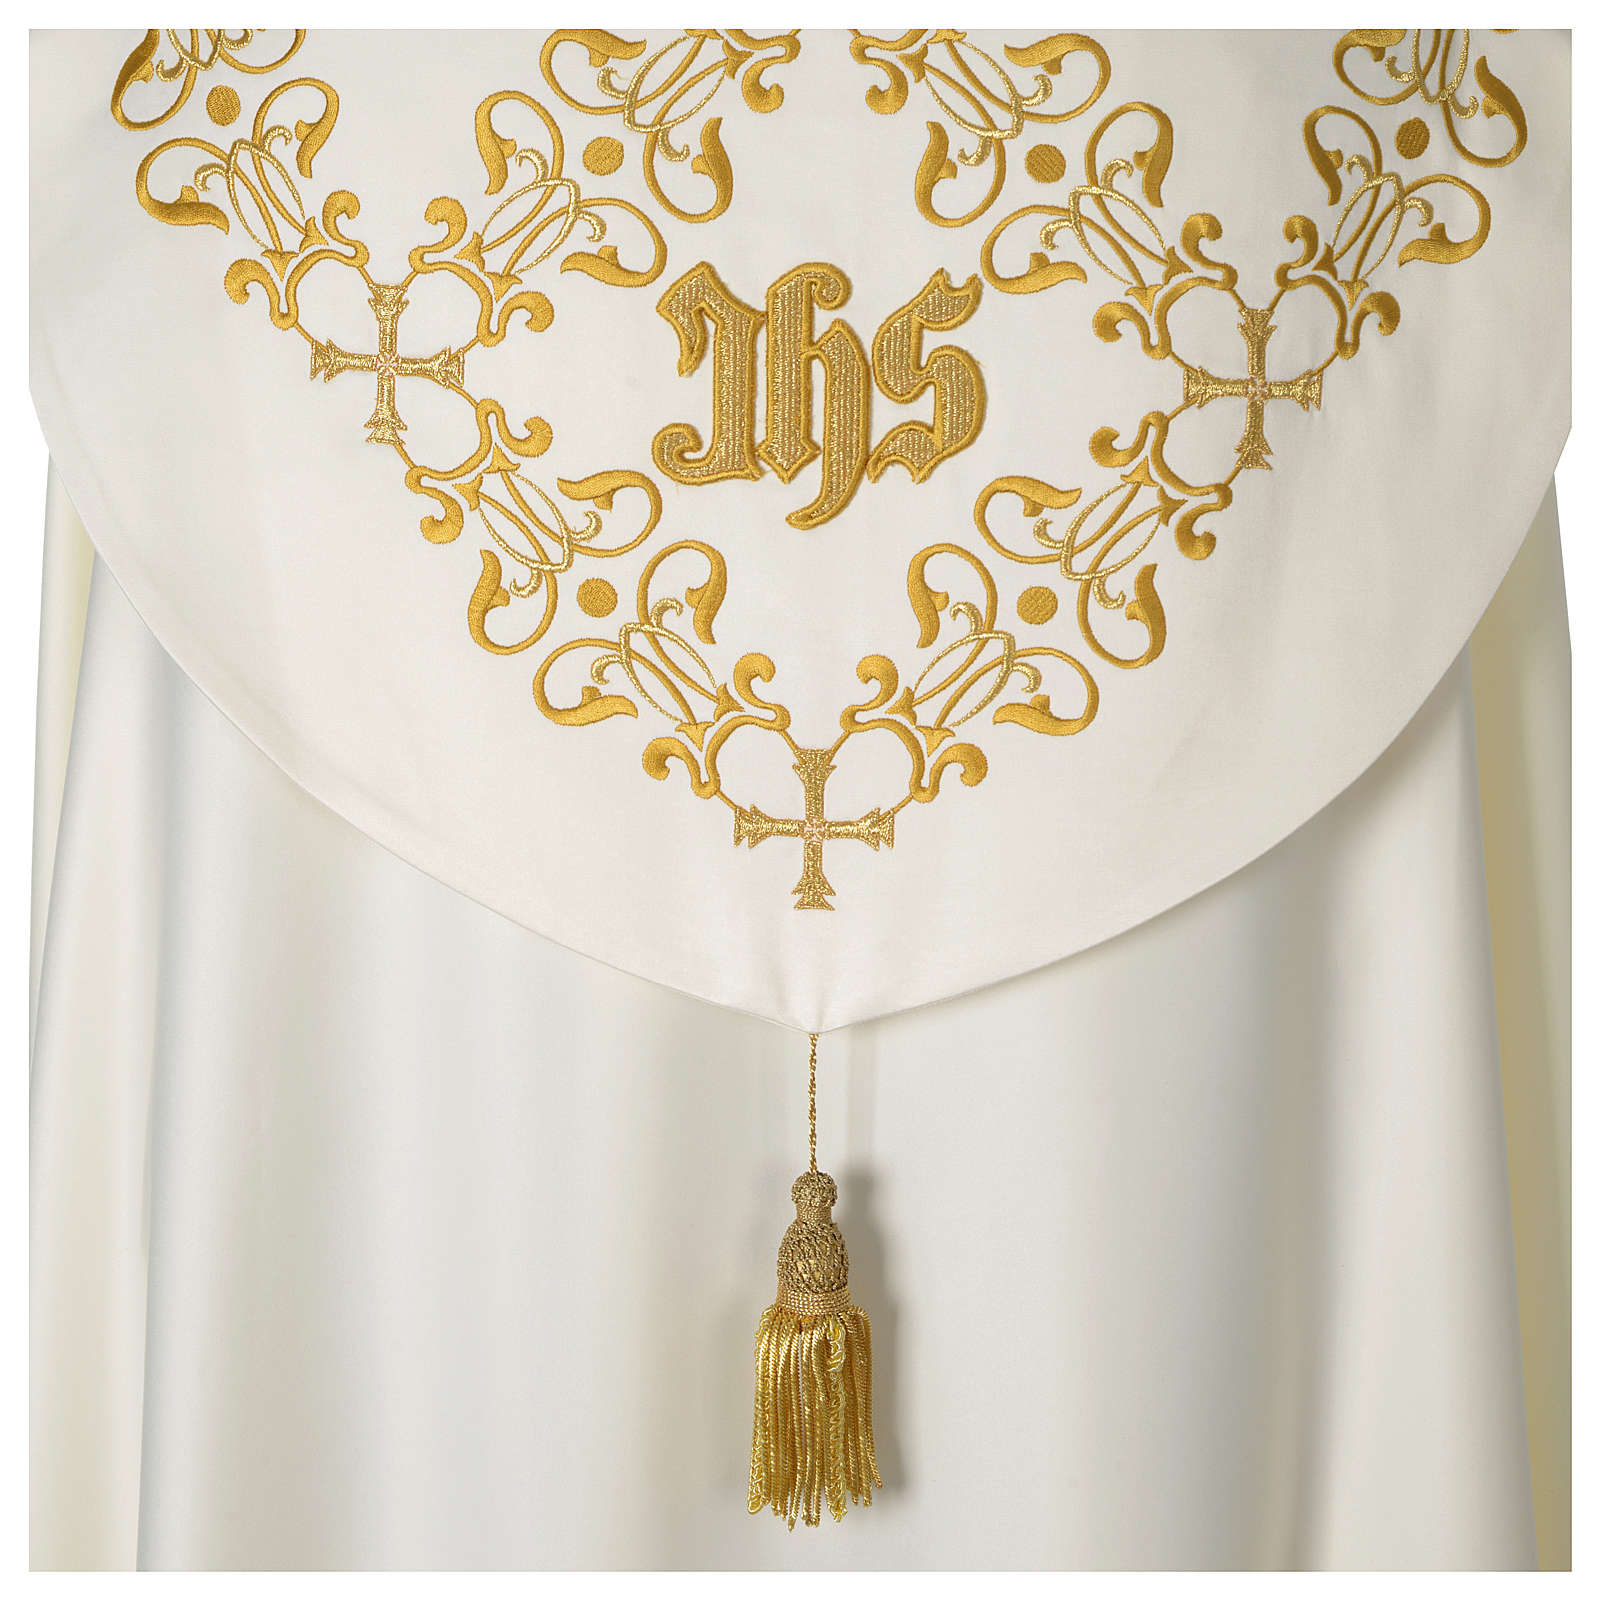 Cope with IHS gold embroidered on hood 4